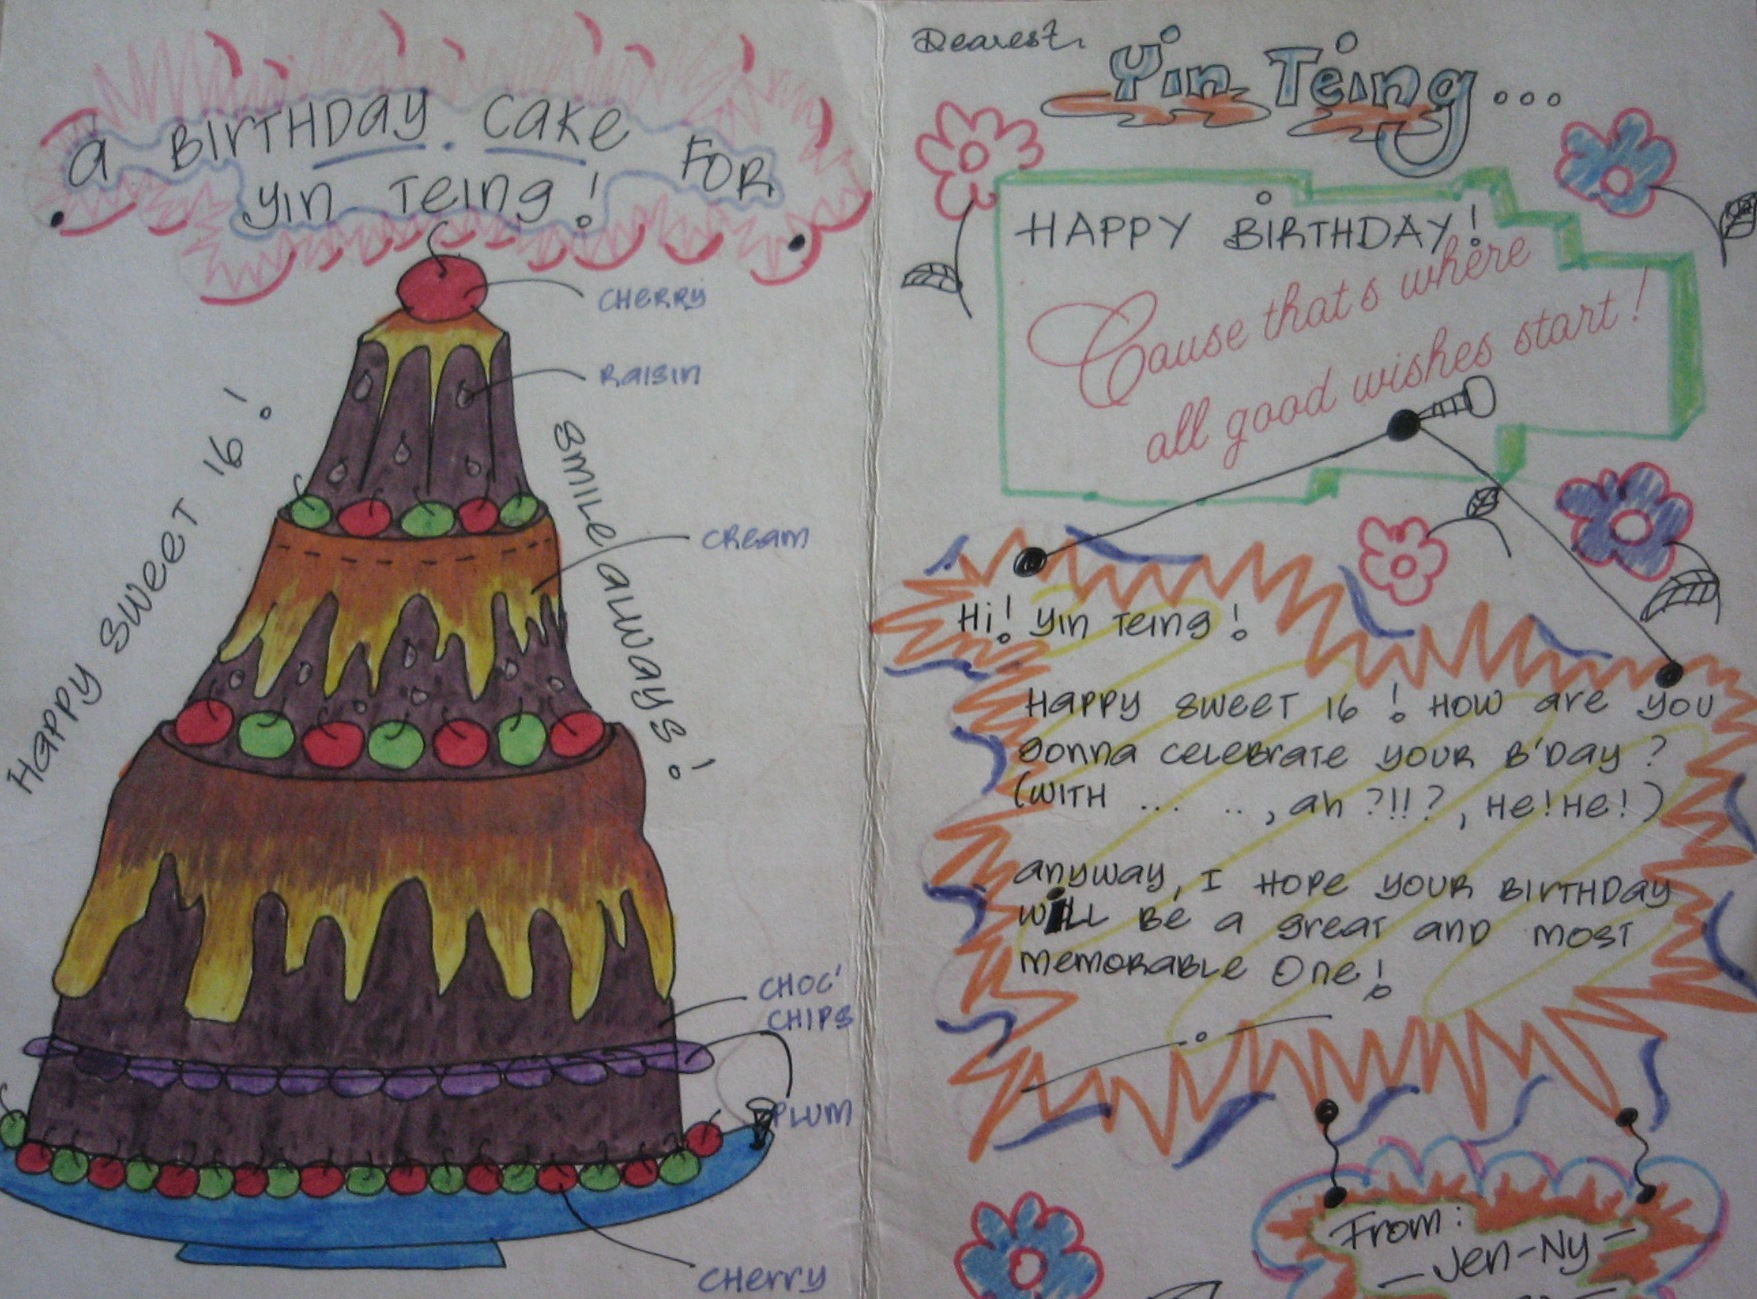 The Diagram In Card Were All Drawn By My Artistic Friend It Was Given